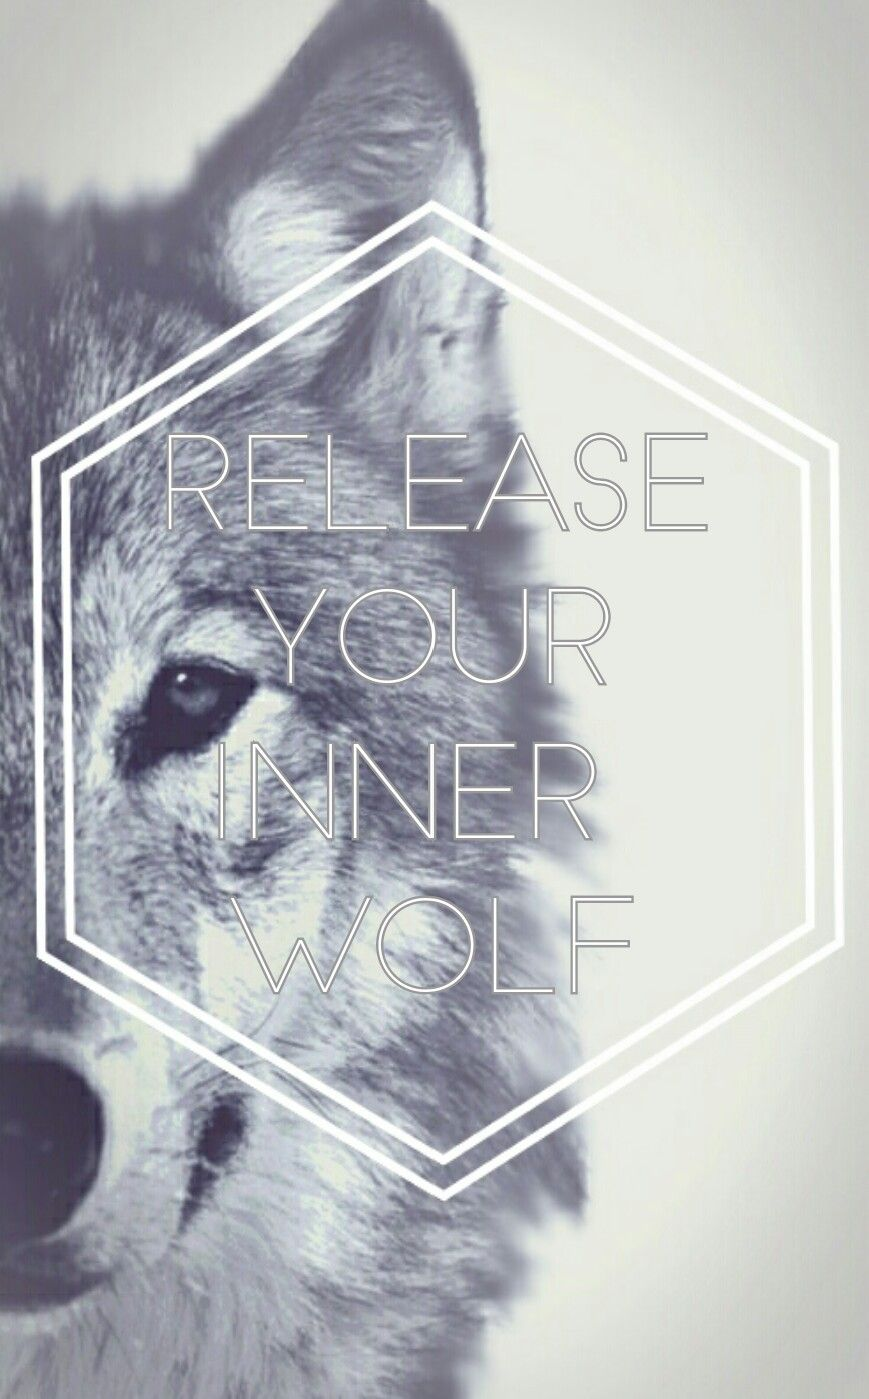 Iphone Wallpaper Release Your Inner Wolf Lupi Sfondi Per